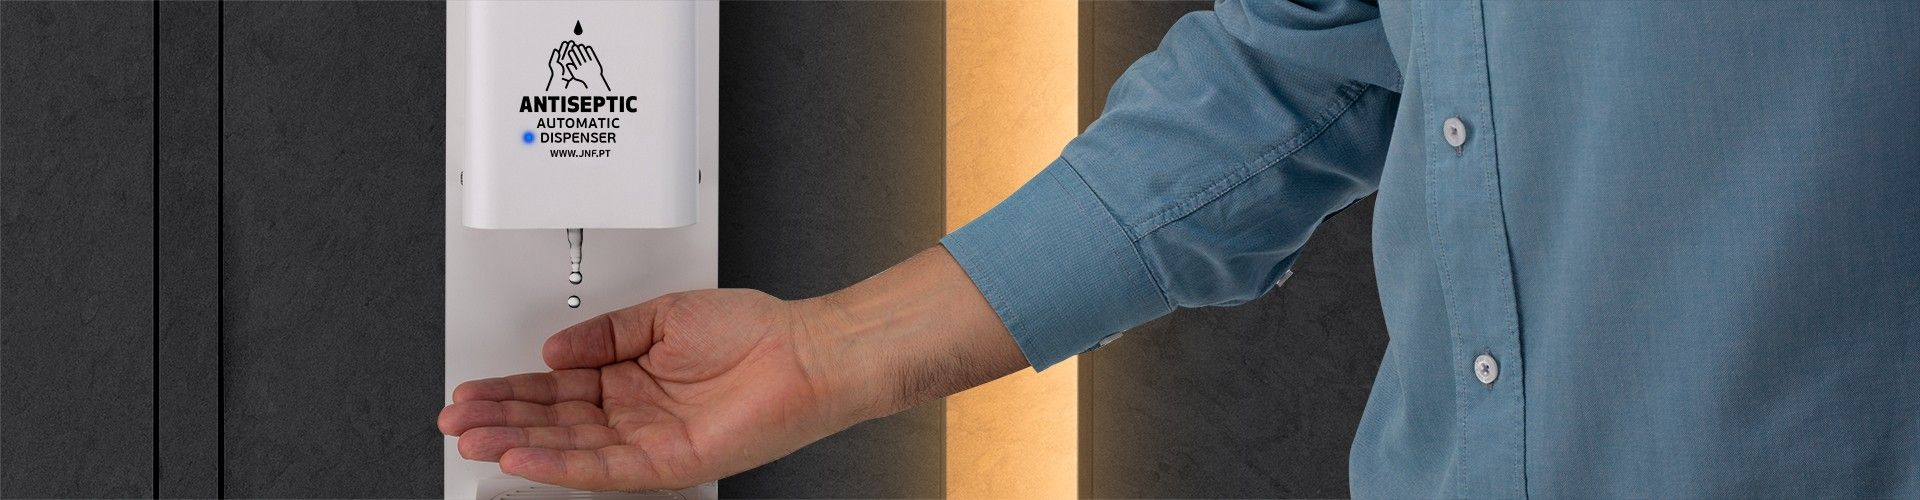 AUTOMATIC HANDS-FREE DISPENSERS